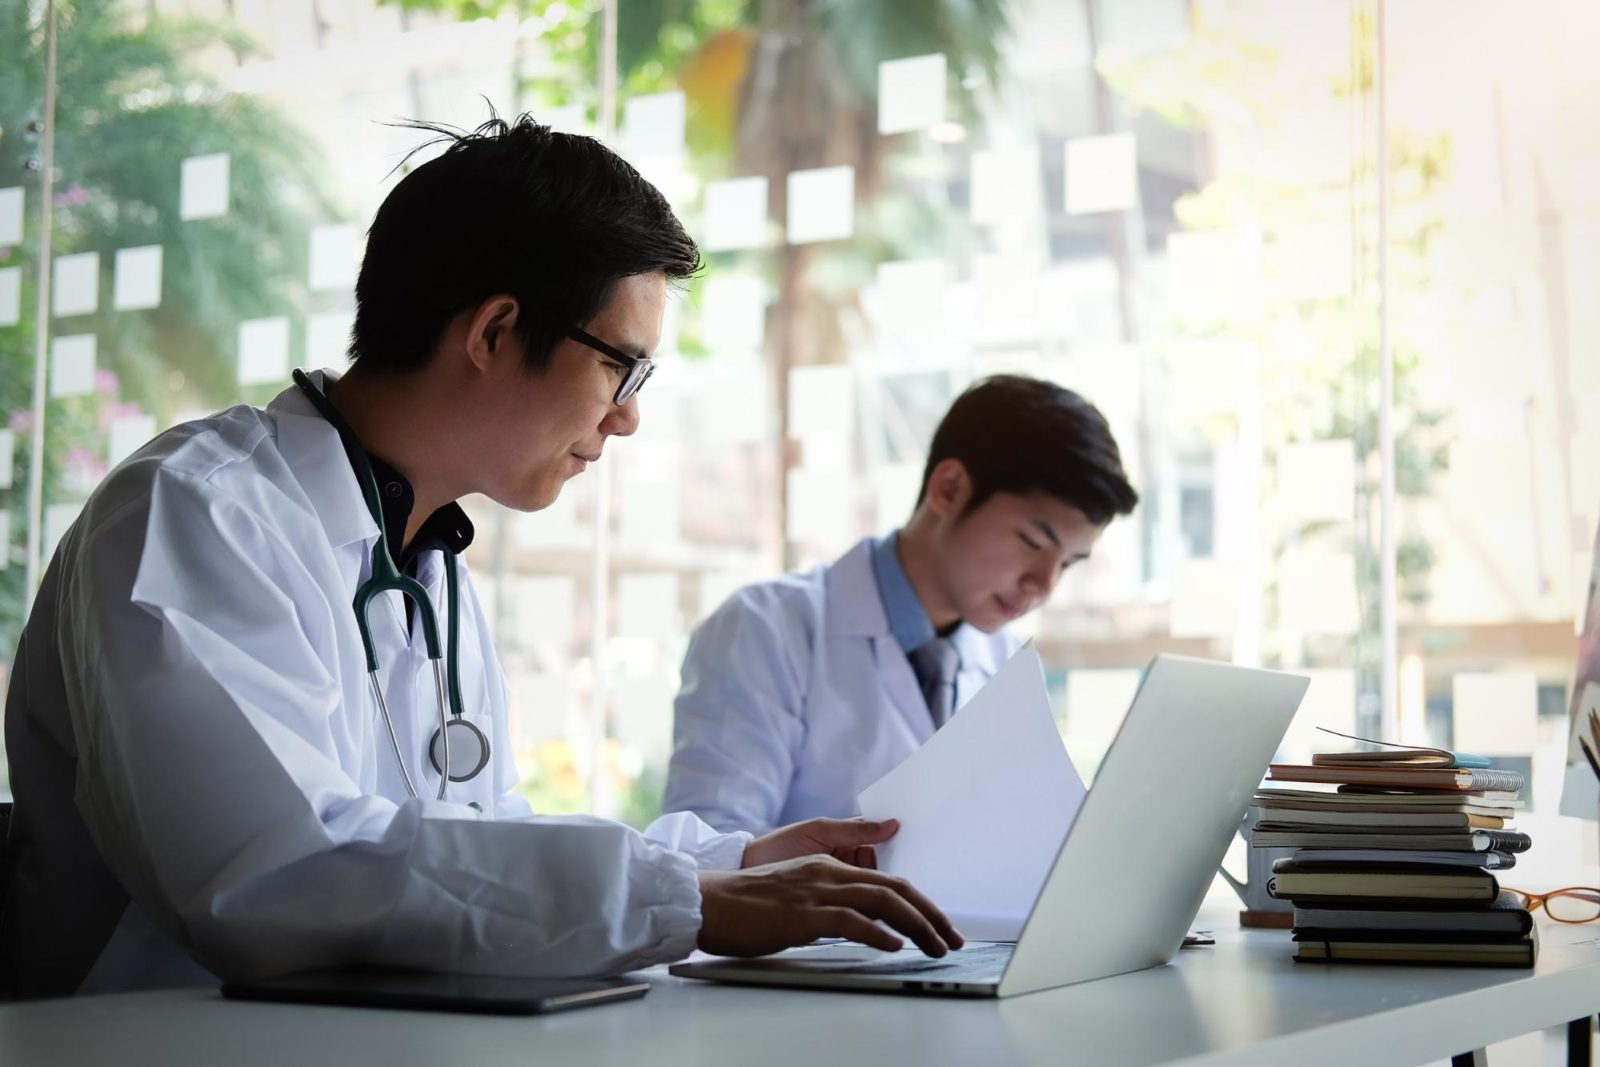 doctorate degree: doctor and nurse checking a patient's medical record on a clipboard